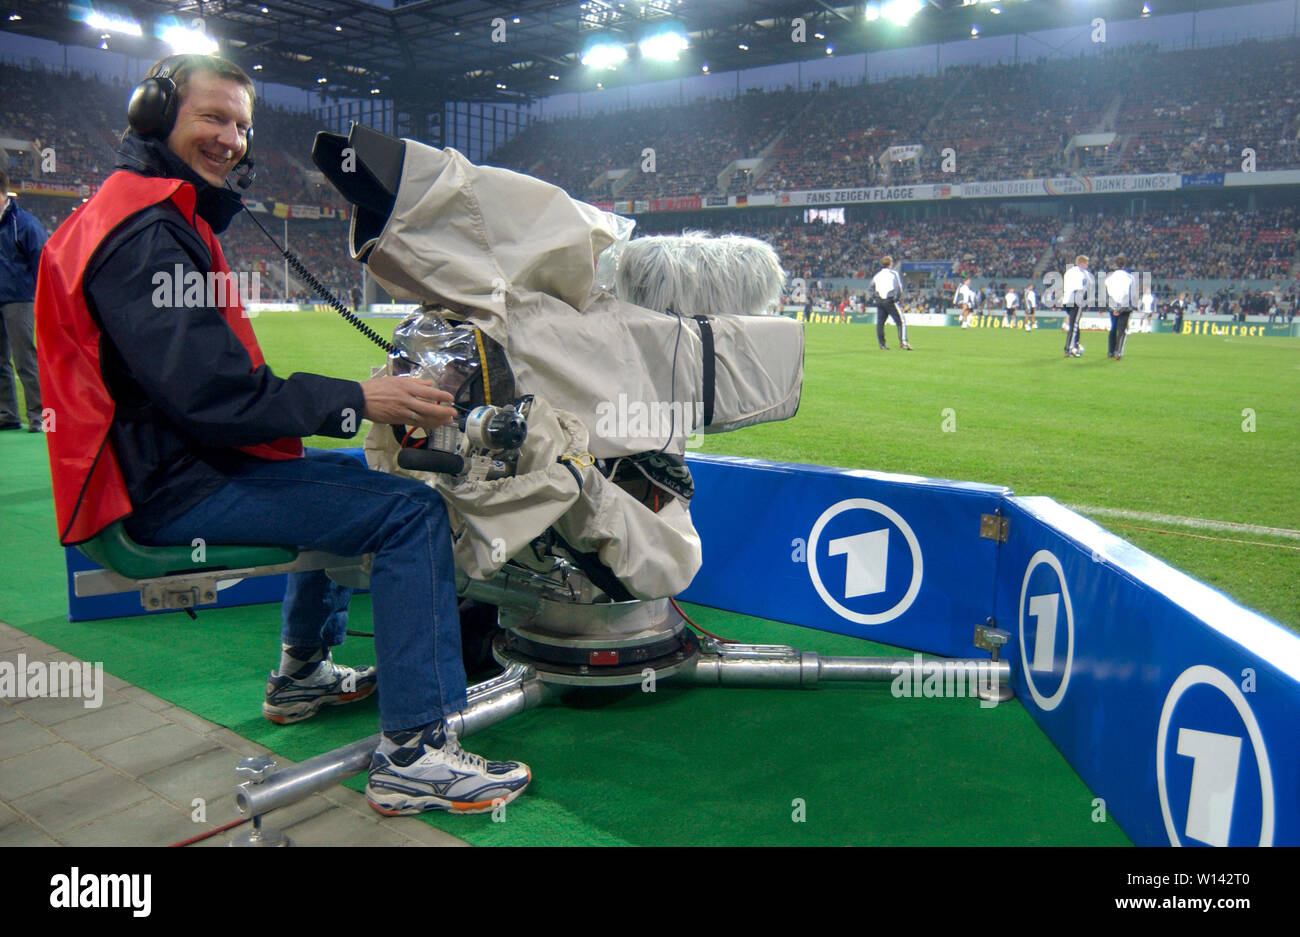 """Rhein-Energie-Stadion Cologne Germany, 31.3.2004, Football: International friendly, Germany (white) vs. Belgium (red) 3:0 --- TV cameraman of the German Television channel """"Das ERSTE"""" (ARD) on the sidelines of the pitch Stock Photo"""